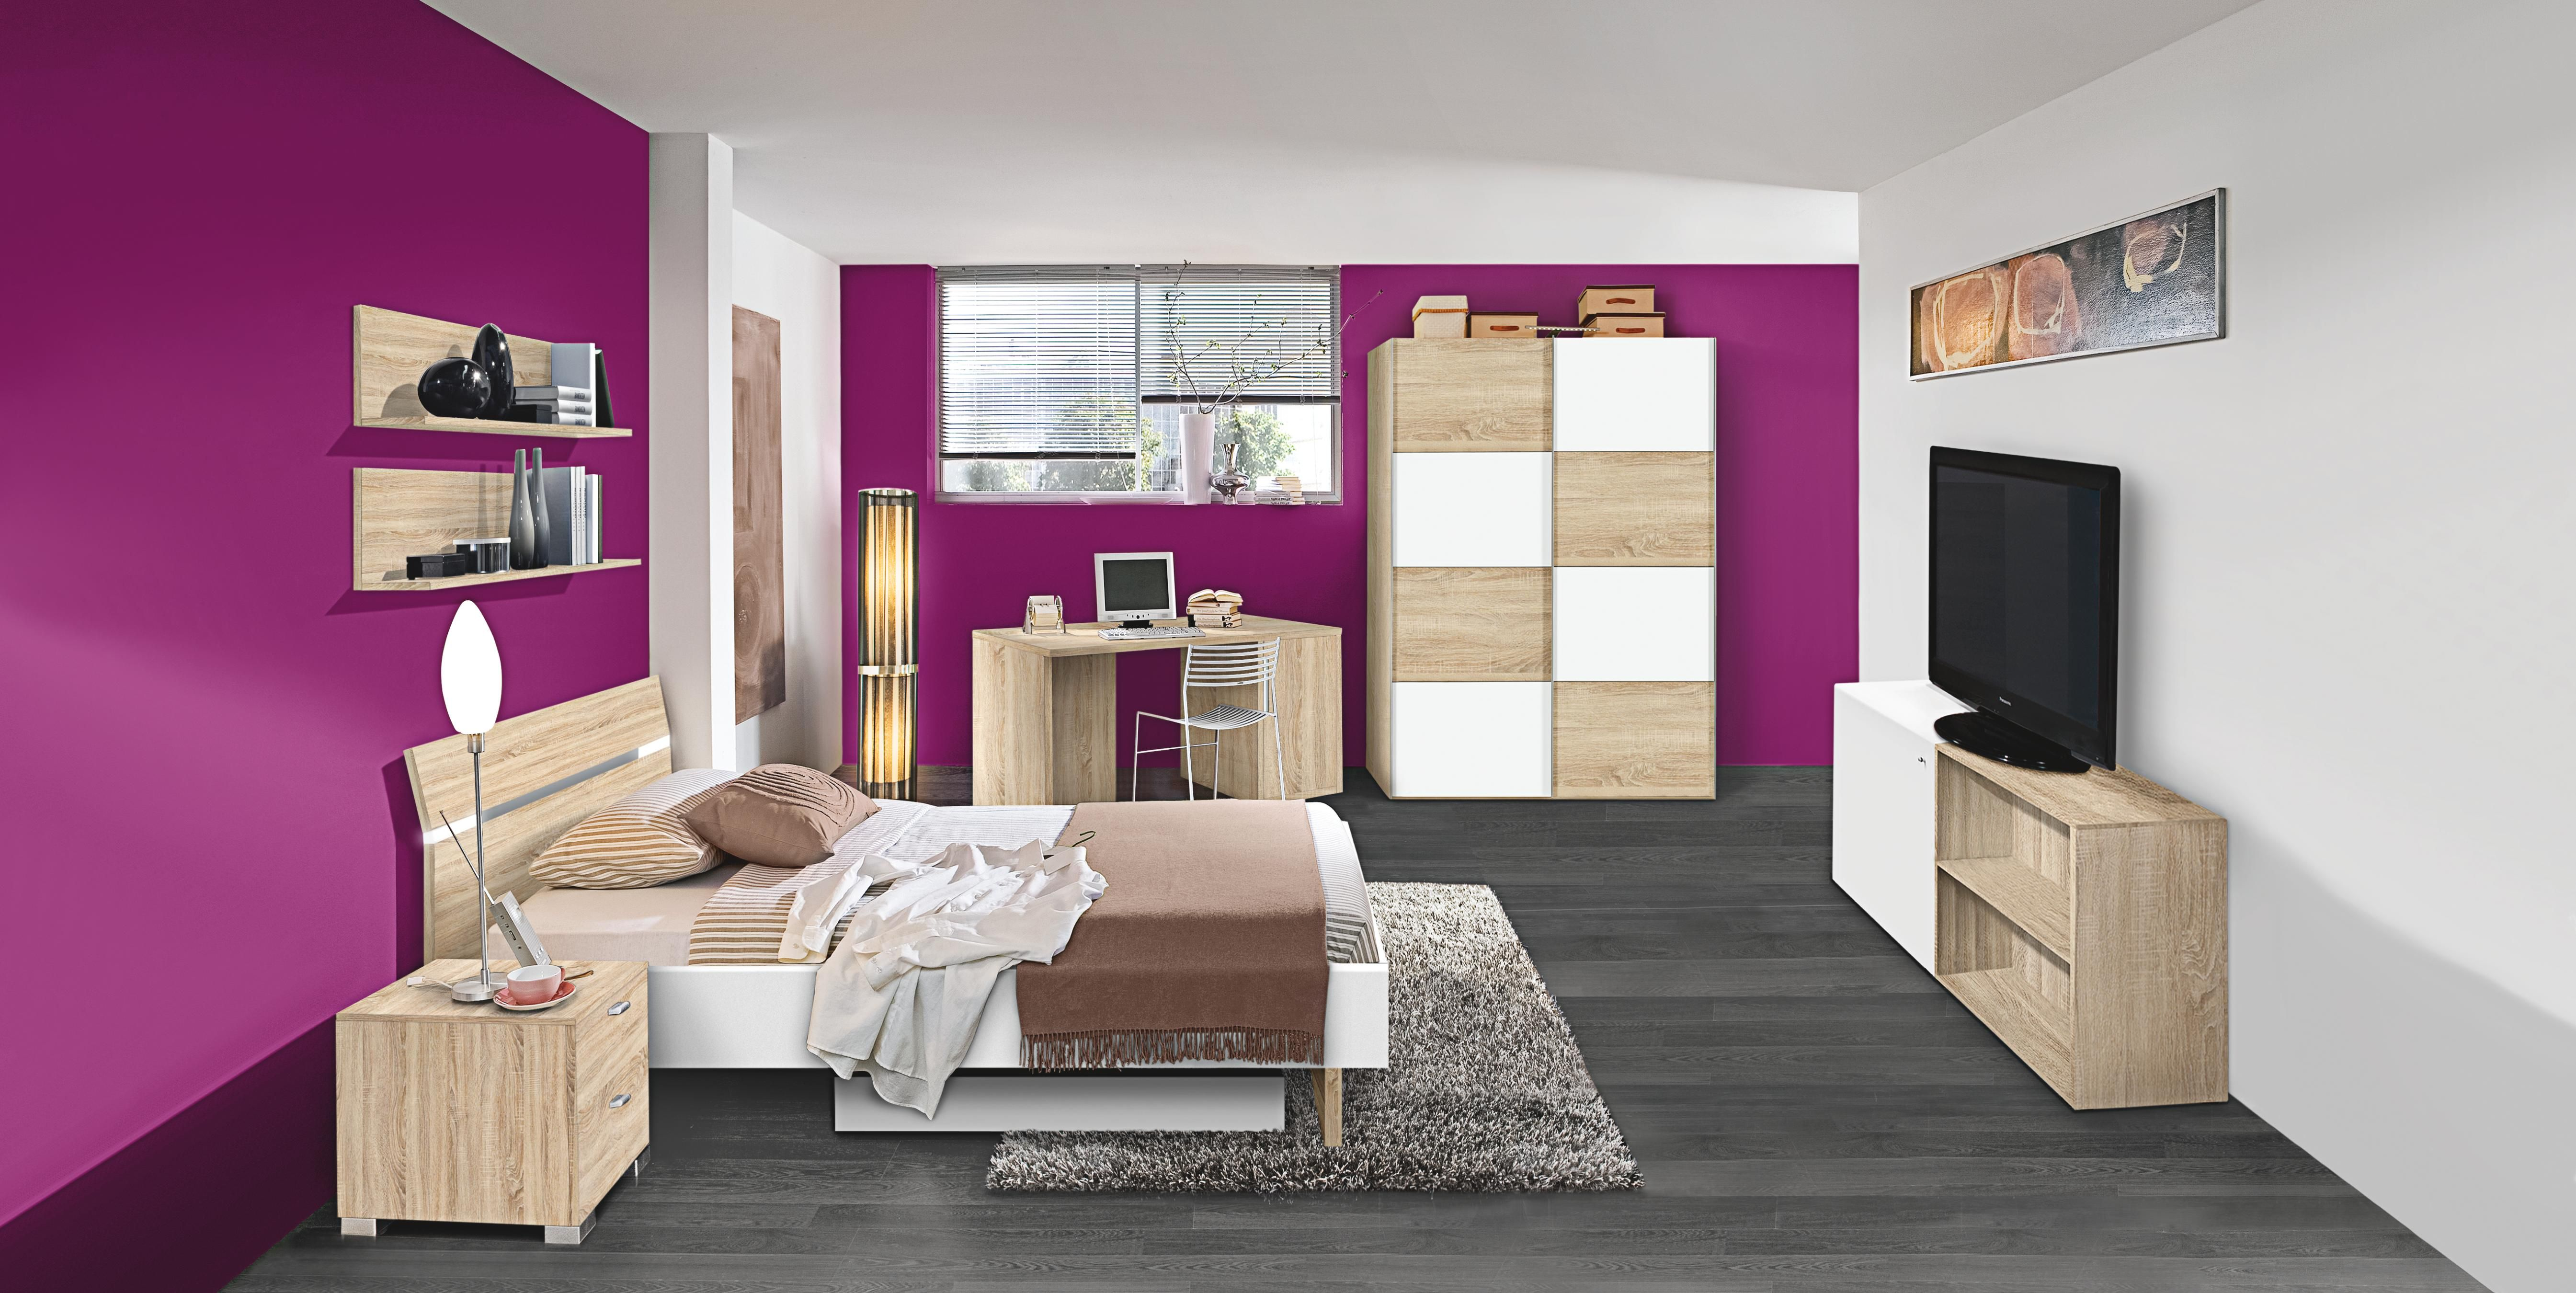 dieses jugendzimmer ist hochwertig und chic bei einer gr e von ca 120 x 200 cm b x l bietet. Black Bedroom Furniture Sets. Home Design Ideas